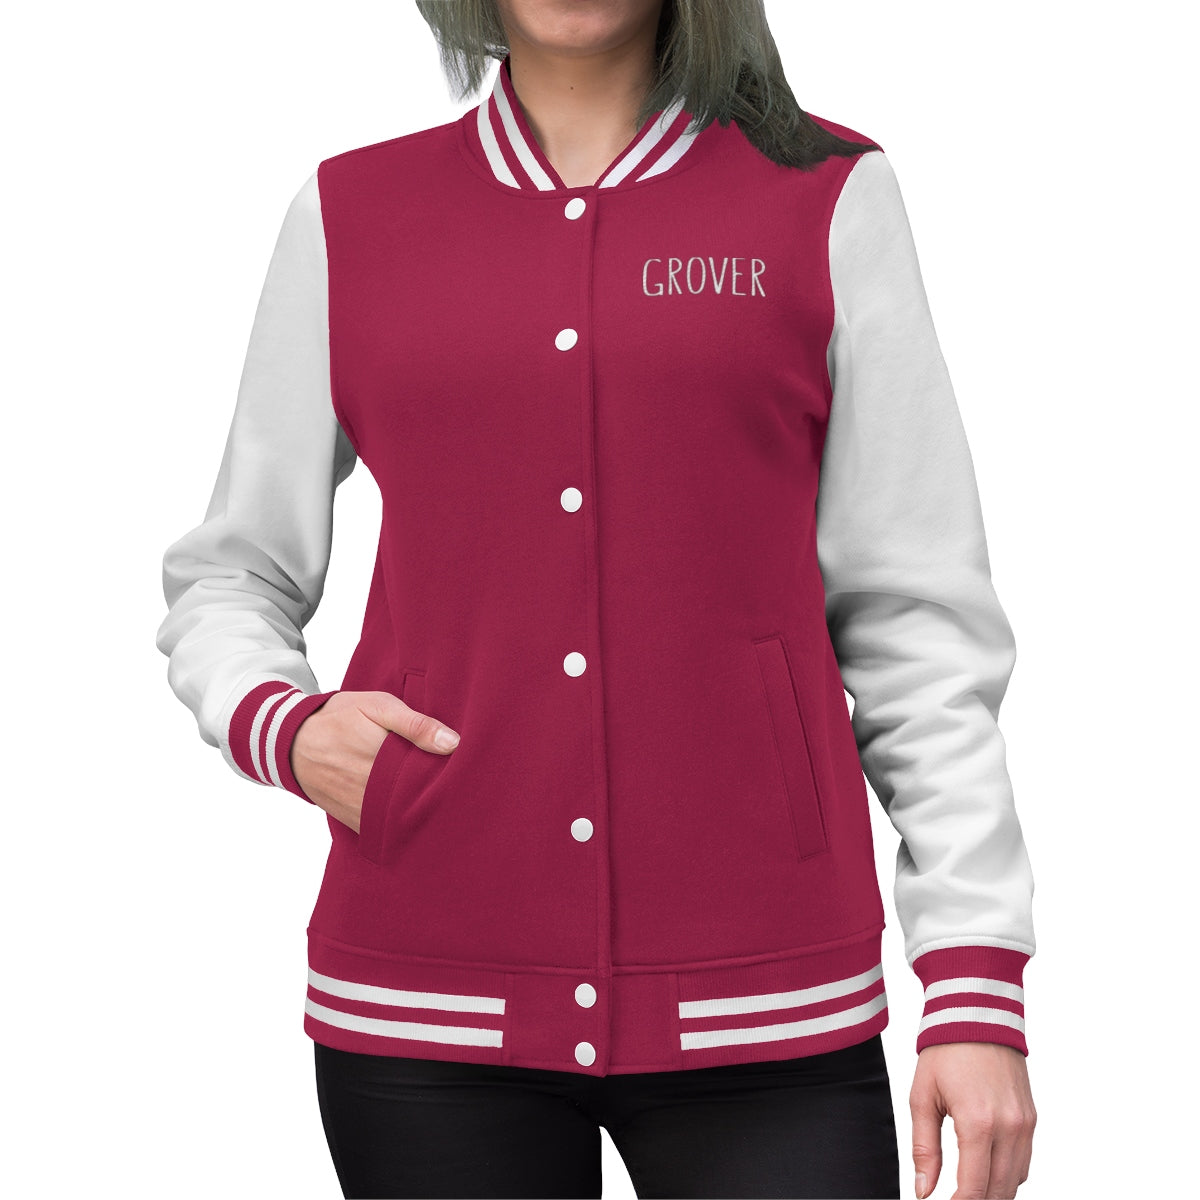 Grover Women's Embroidered Jacket: multiple colors